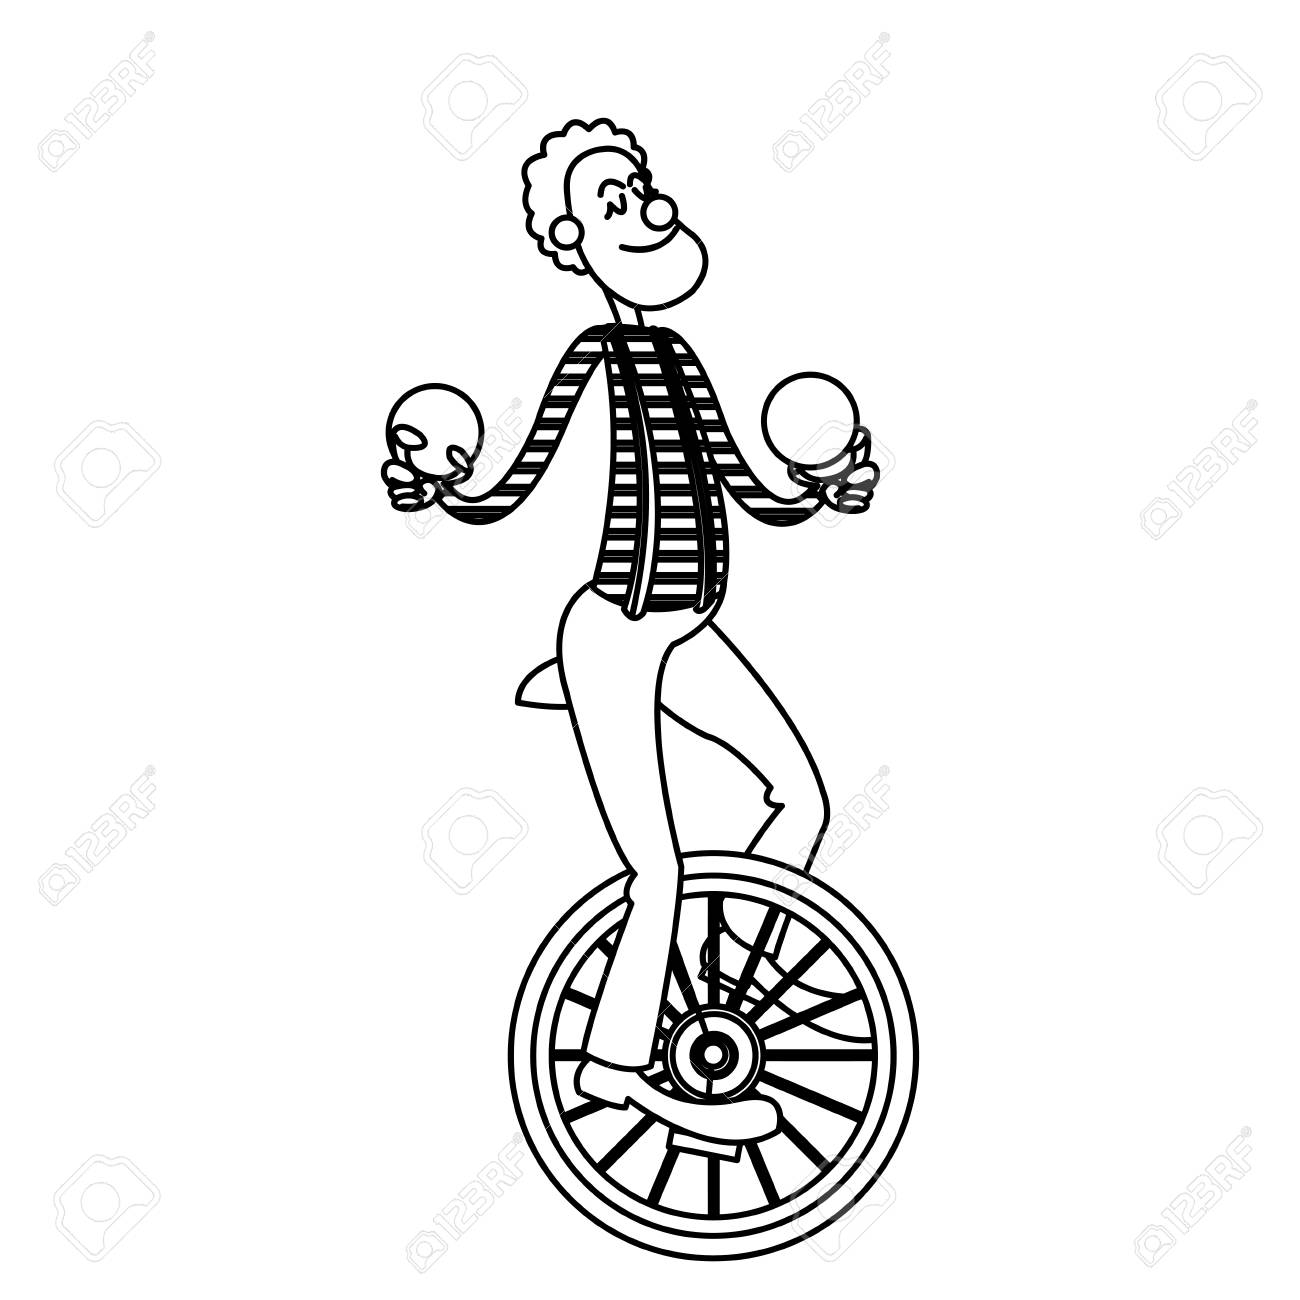 Unicycle Drawing At Getdrawings Com Free For Personal